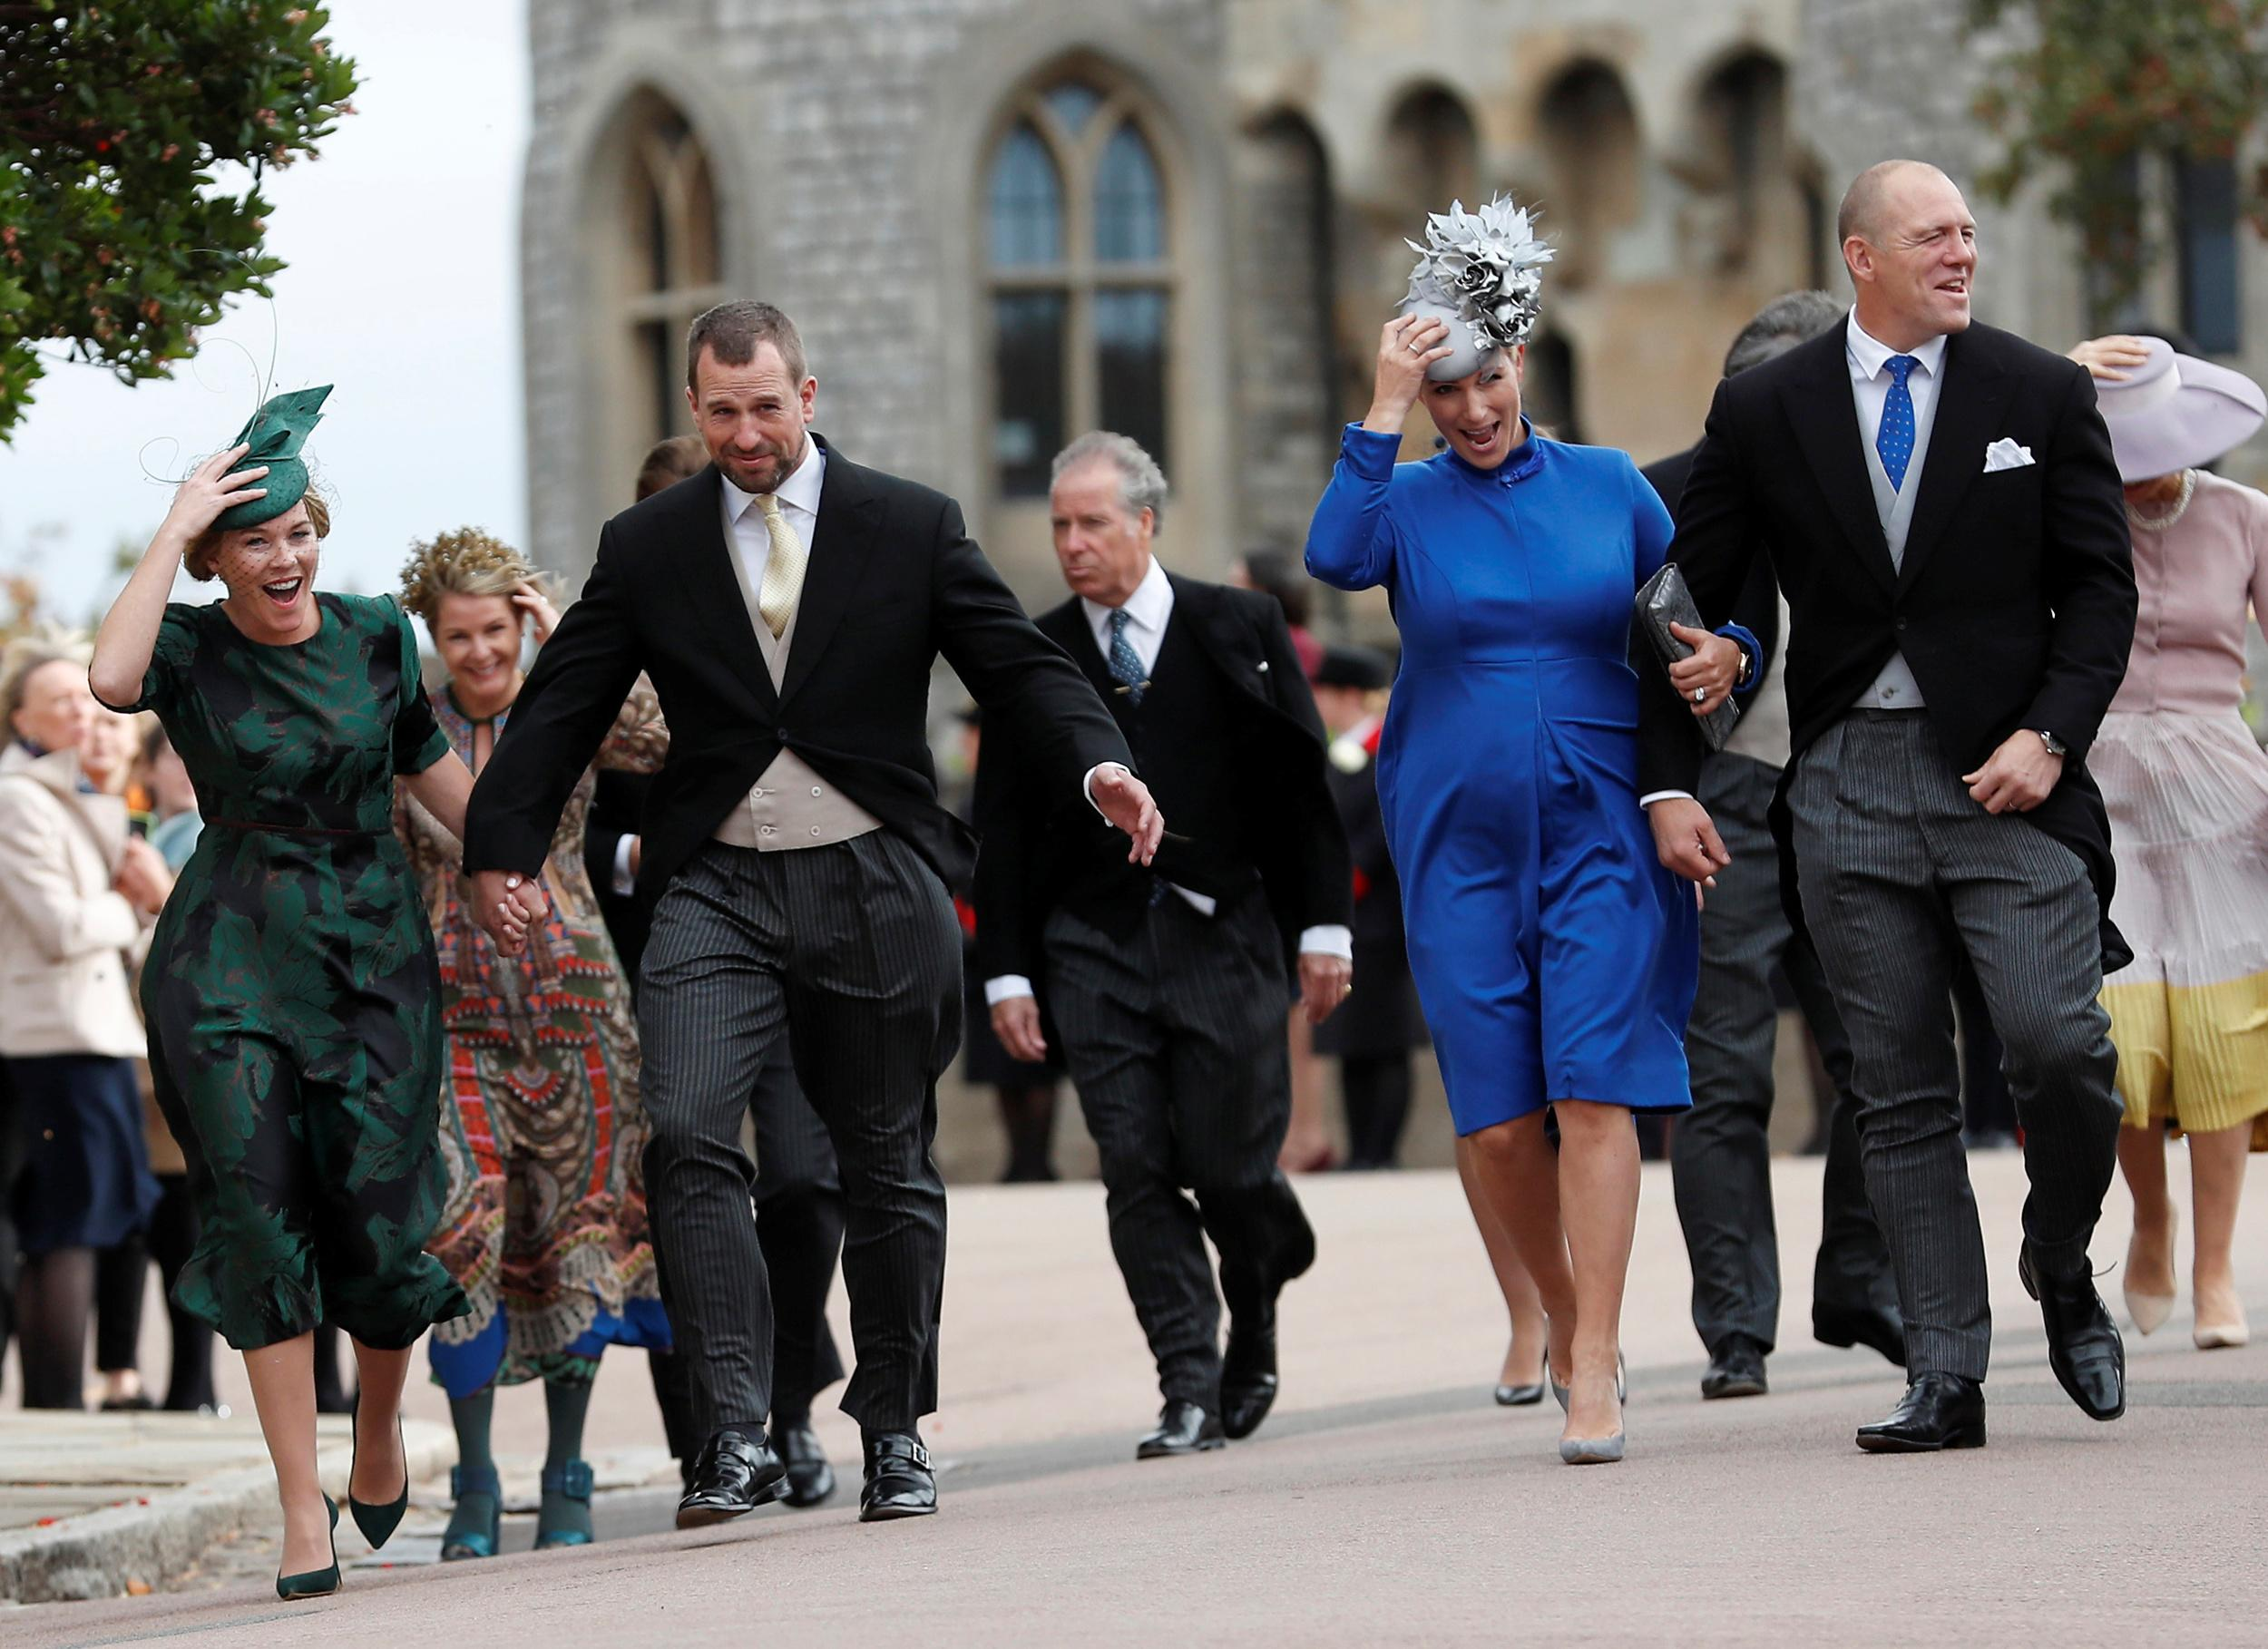 Autumn Phillips, with Peter Phillips, Zara Phillips, and Mike Tindal, from left, hold onto their hats as they arrive for the wedding of Princess Eugenie of York and Jack Brooksbank in St George's Chapel, Windsor Castle, Windsor, Britain, October 12, 2018. Alastair Grant/Pool via REUTERS